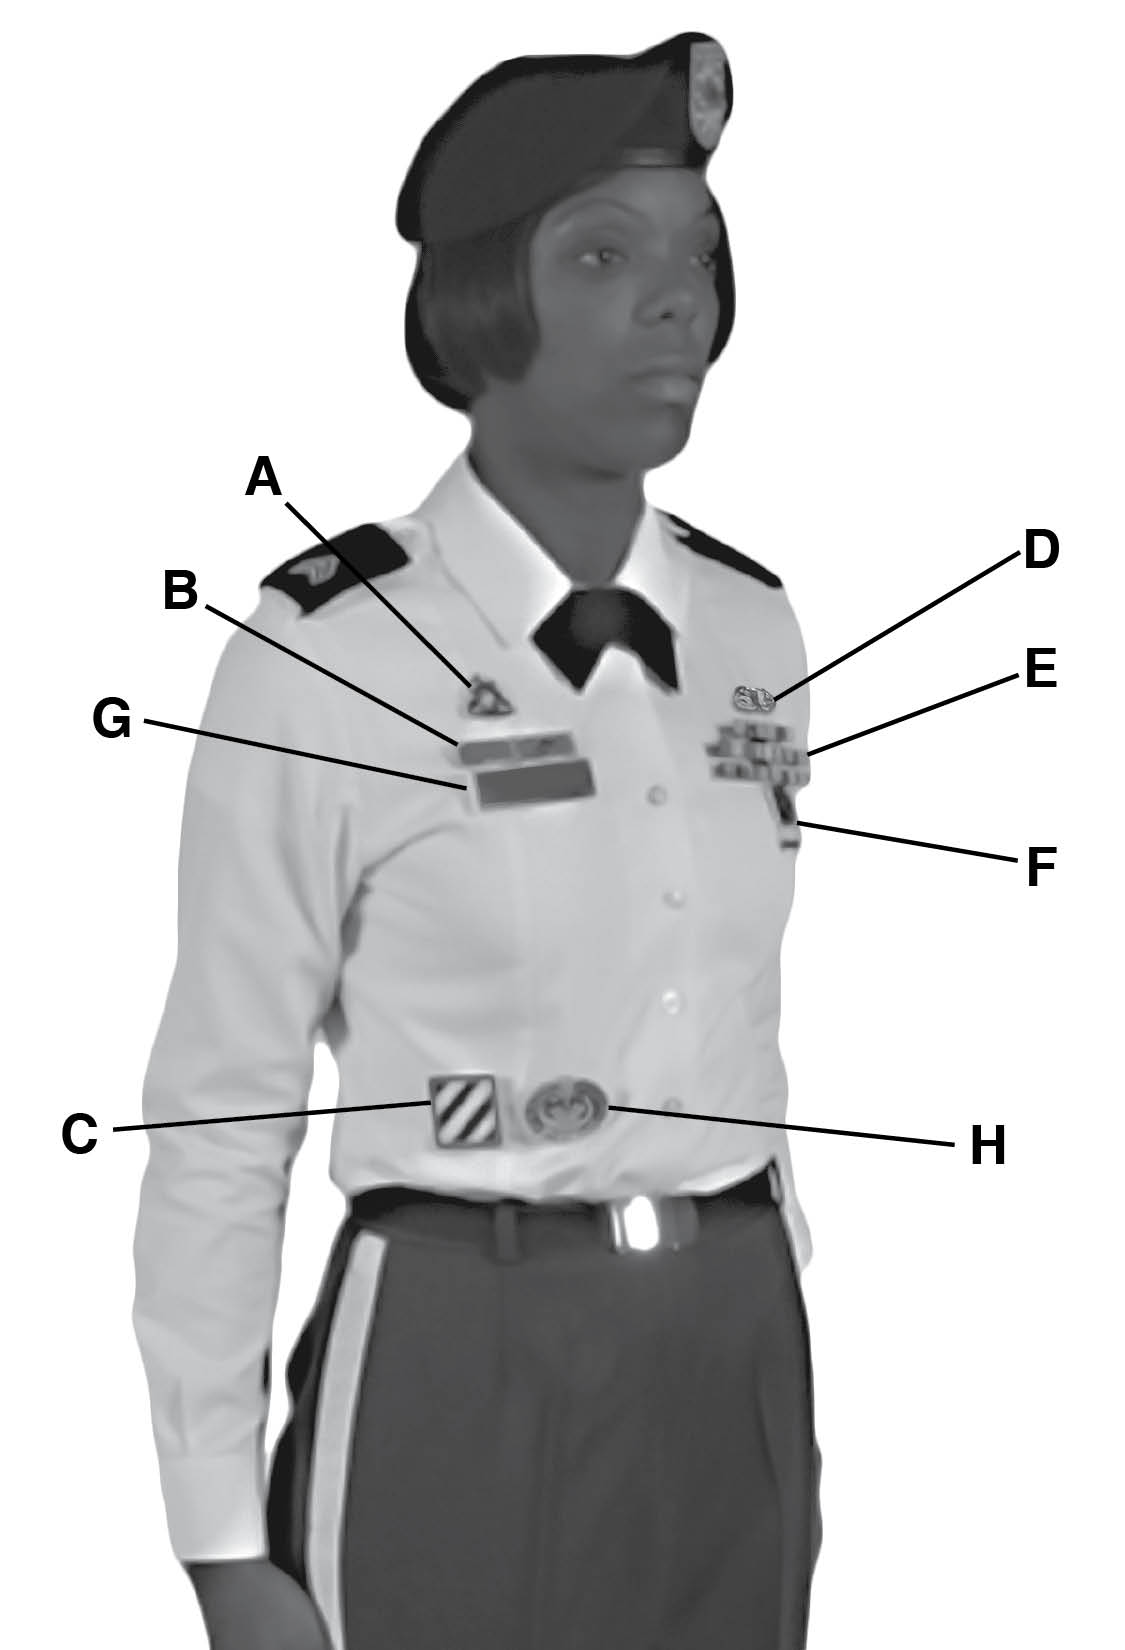 Female Class B Uniform 119